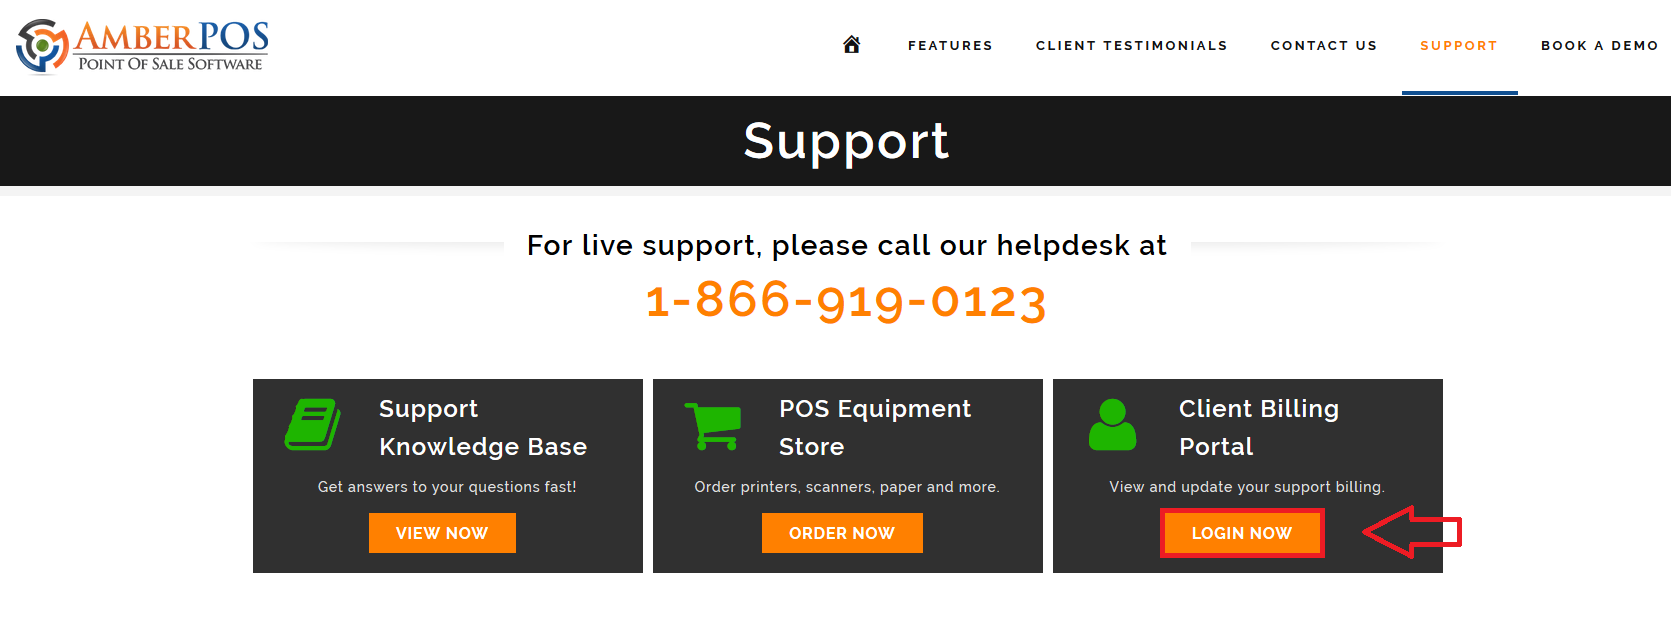 Support_page_of_website_2.png